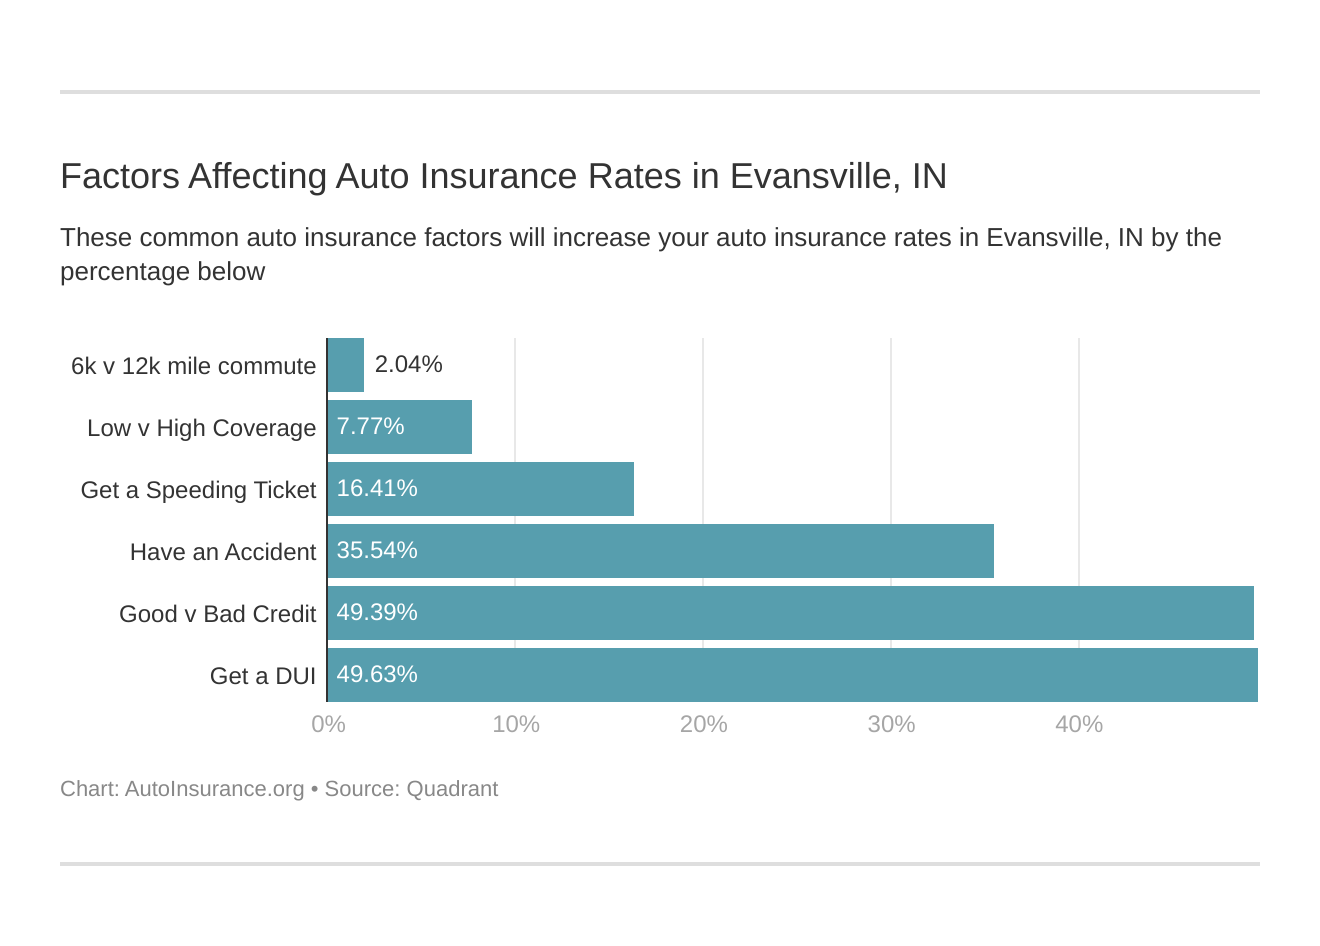 Factors Affecting Auto Insurance Rates in Evansville, IN